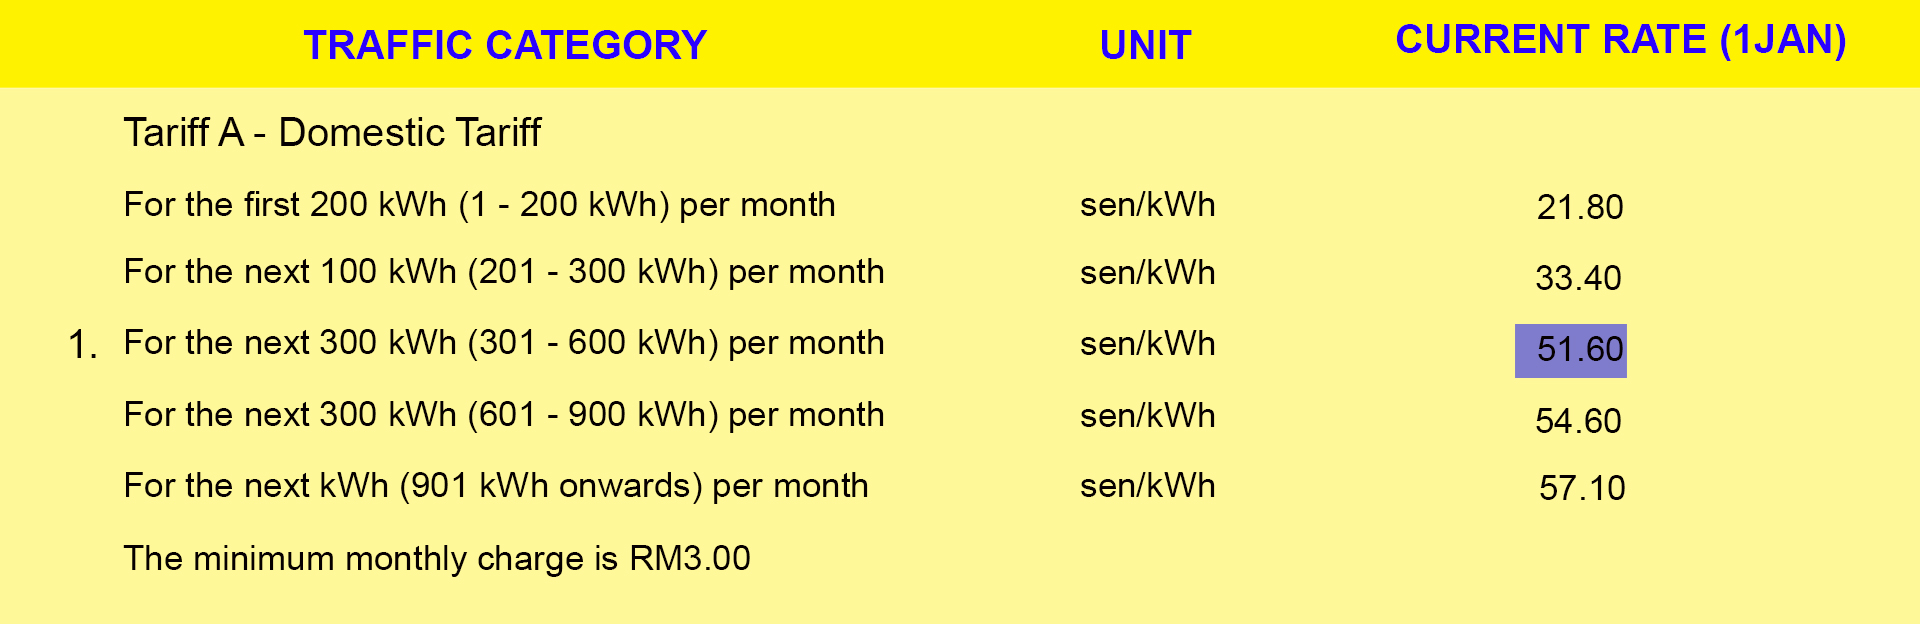 Solar Water Heater help save up to RM2400 per year - Smart